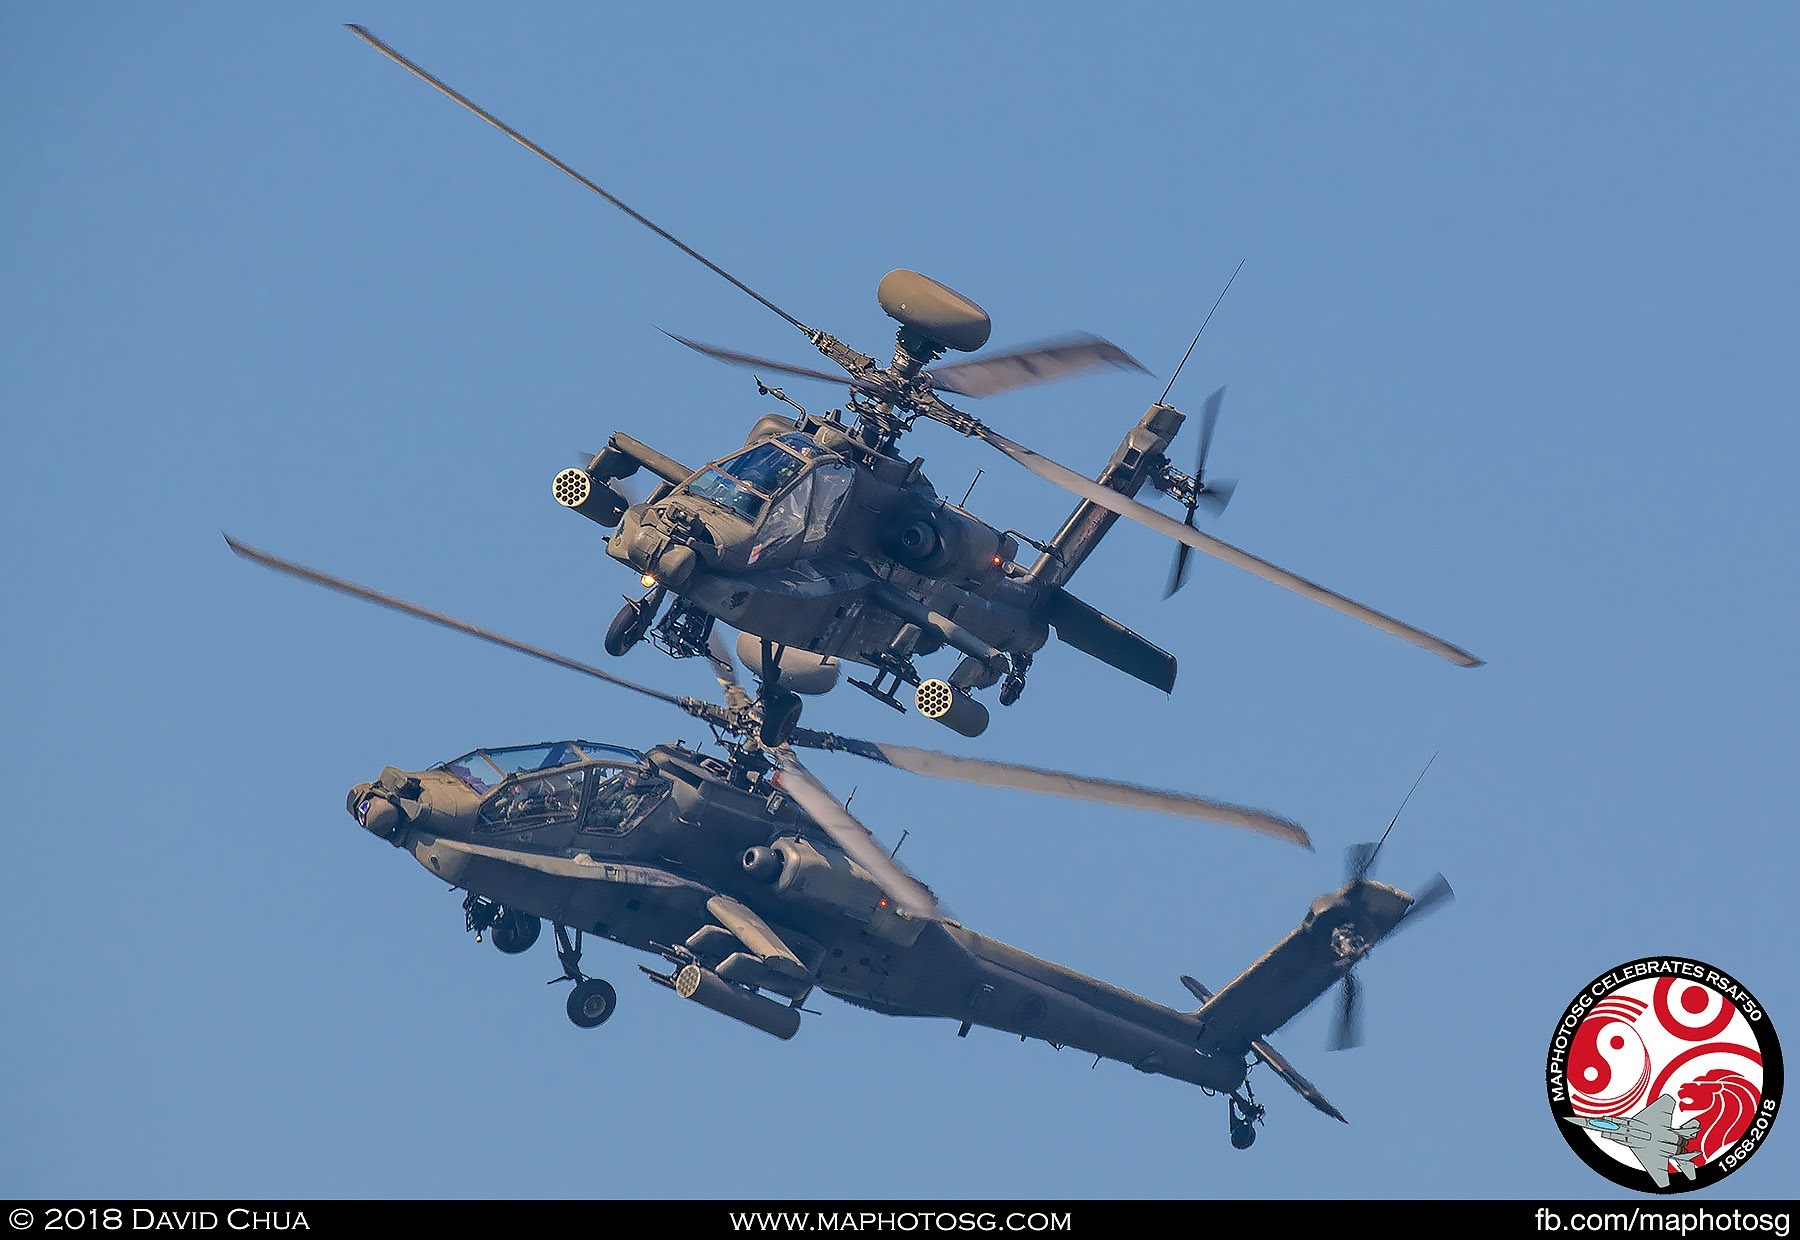 Final shot of the two Apaches as they complete their circle to overfly the crowd in the last show on Sunday.